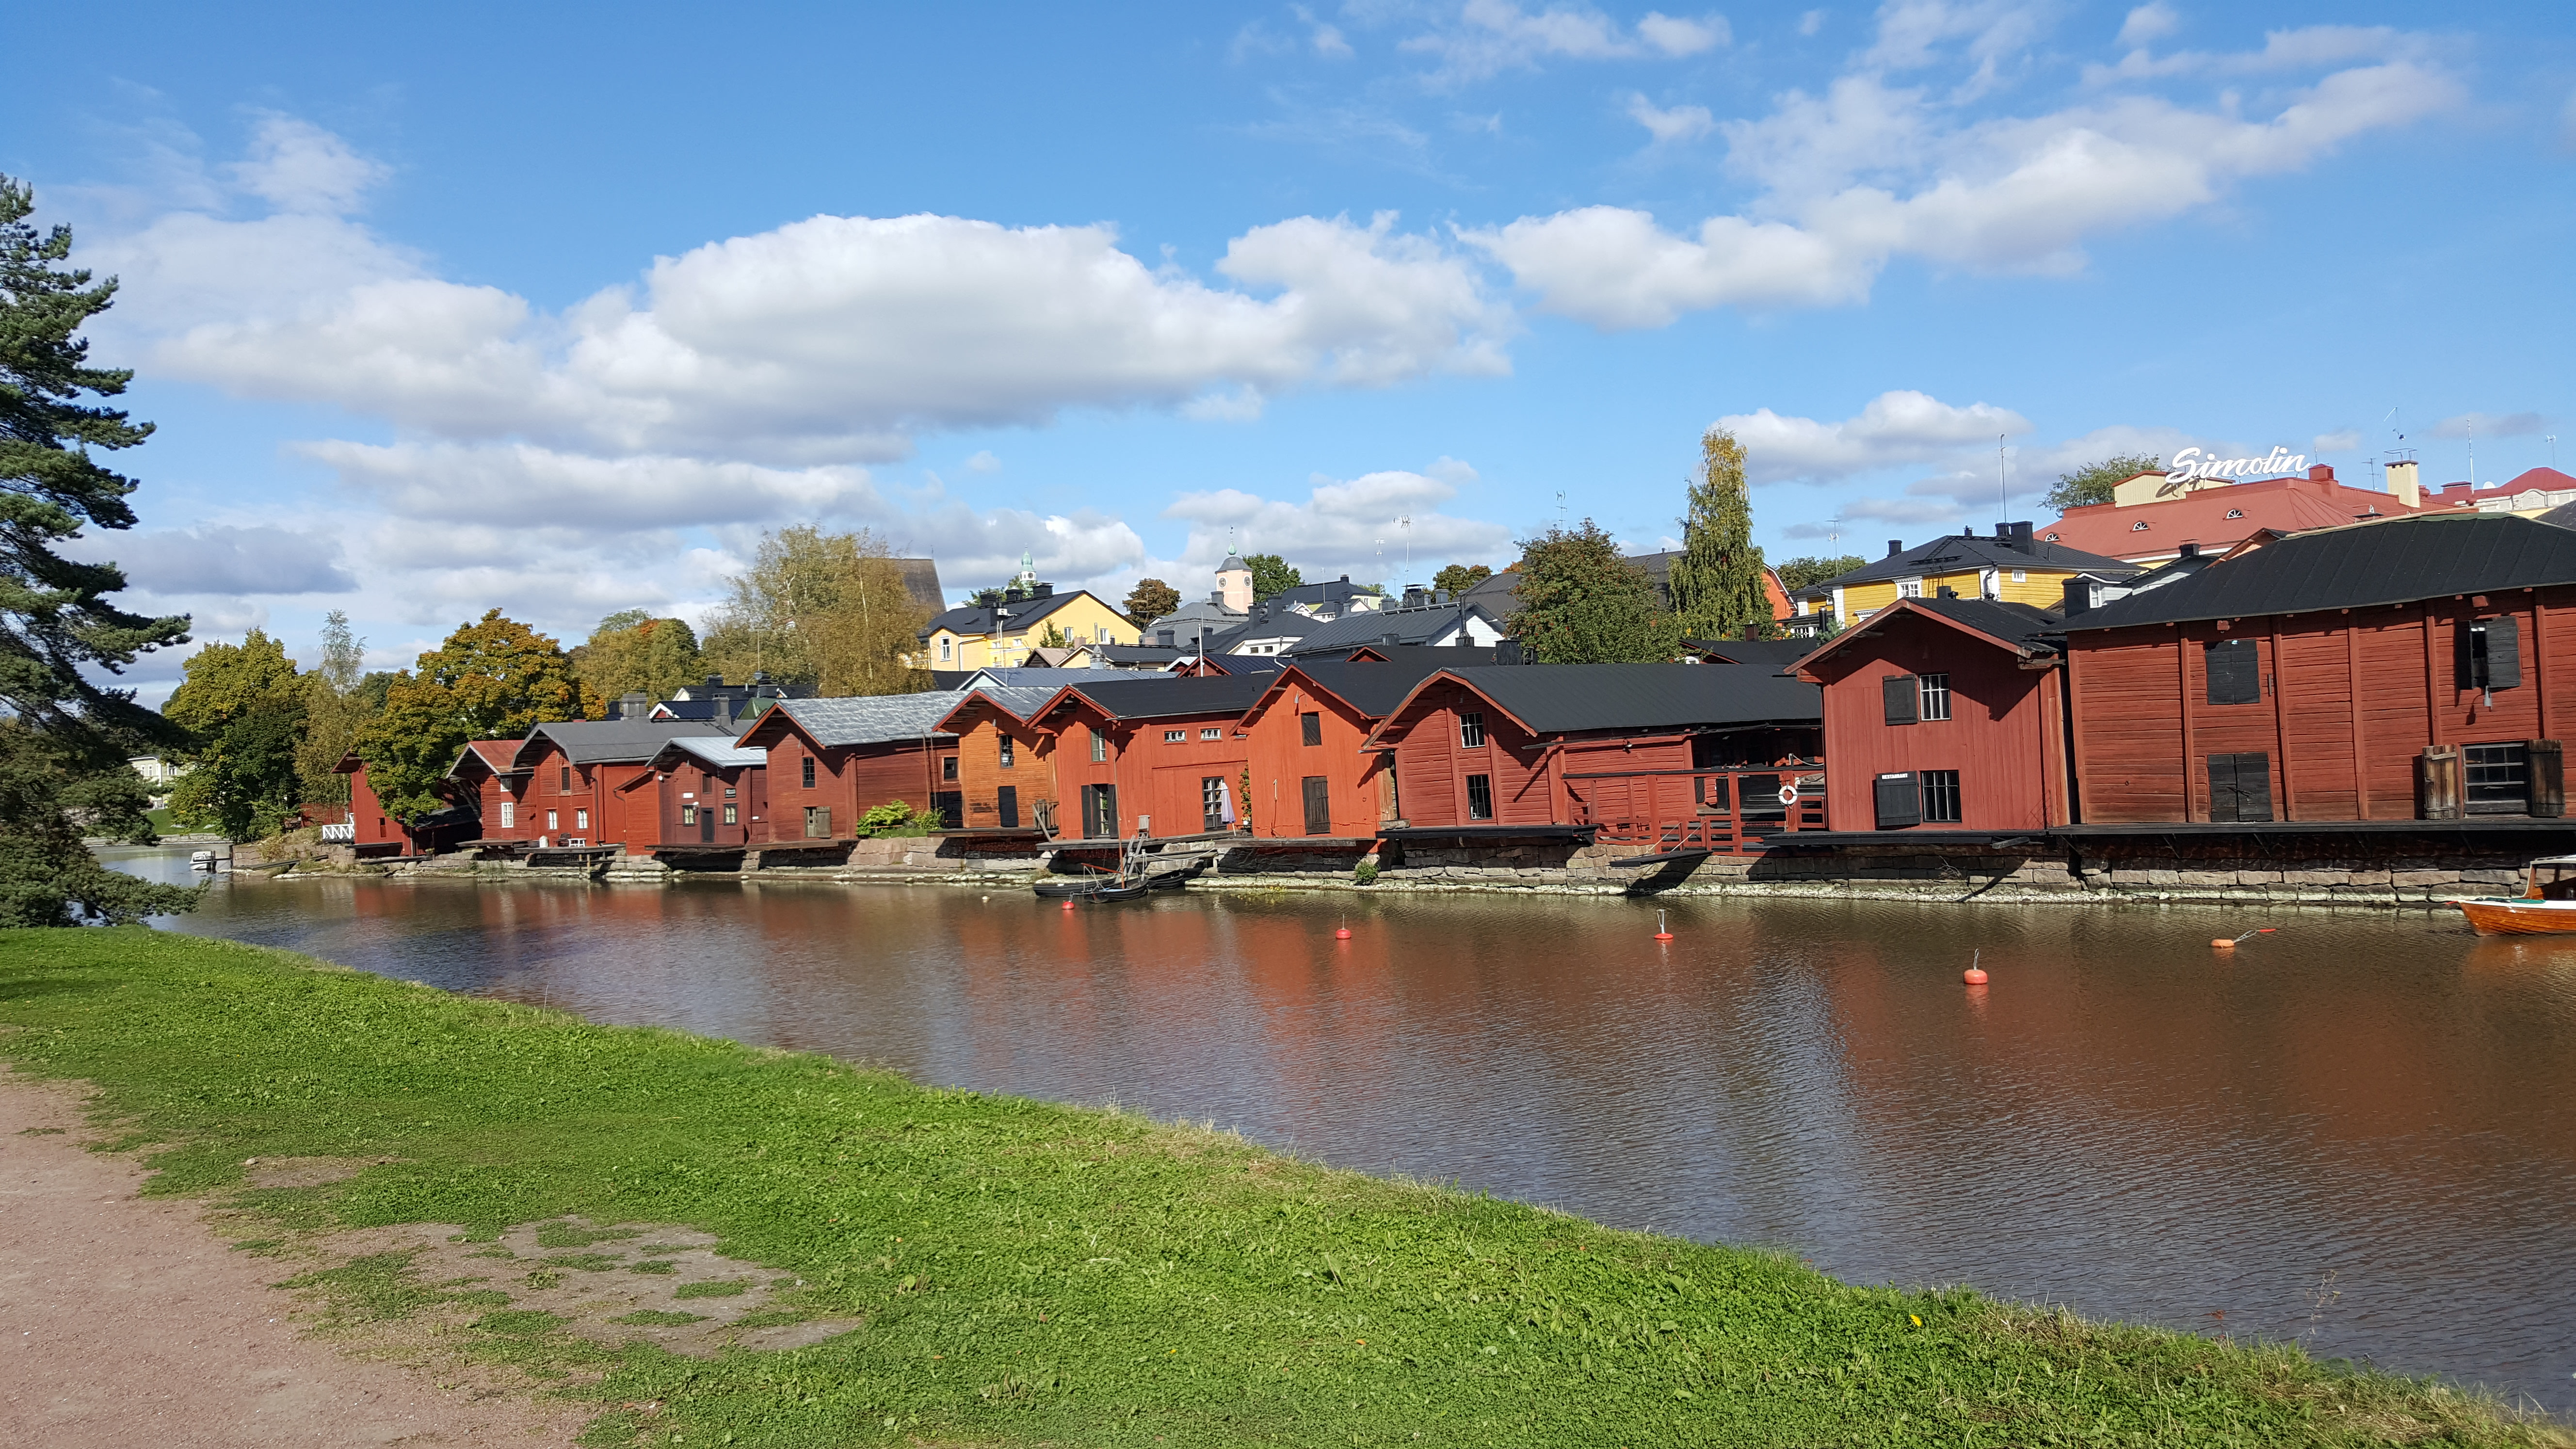 Admire the Storehouses by the river at Porvoo